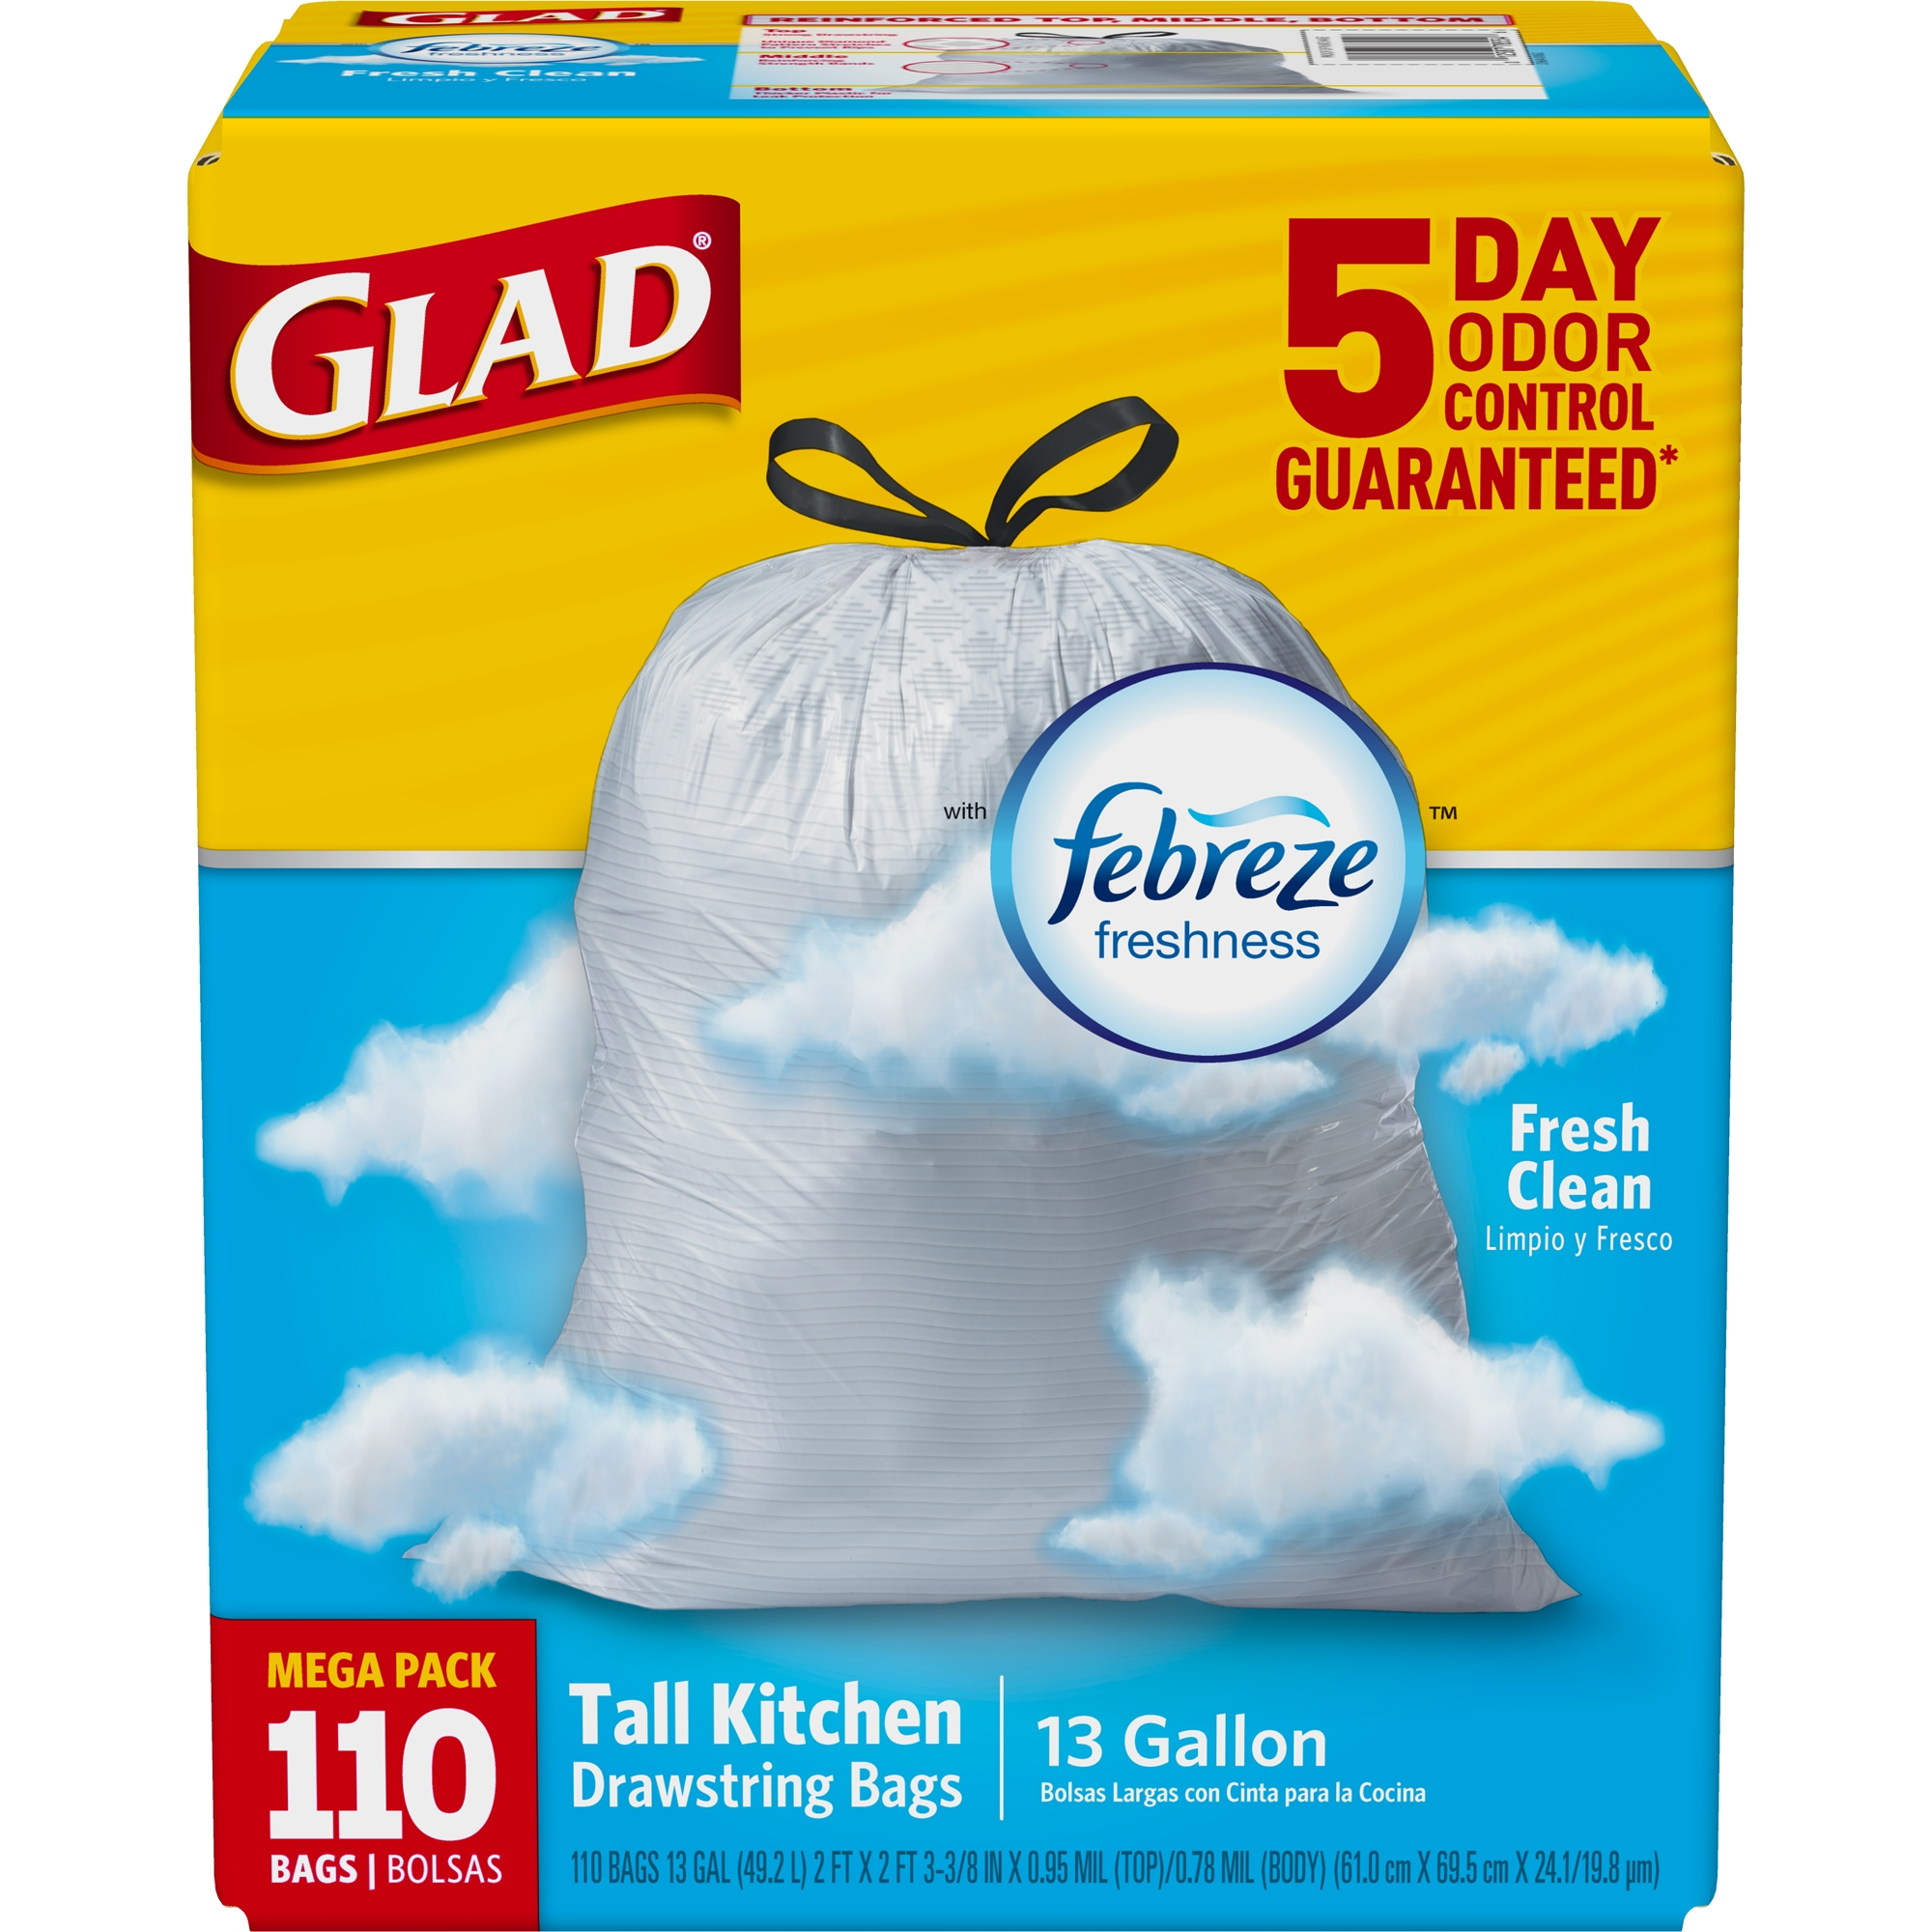 Glad Febreze Fresh Clean OdorShield Tall Kitchen Drawstring Trash Bags, 13 Gallon, Choose Your Count